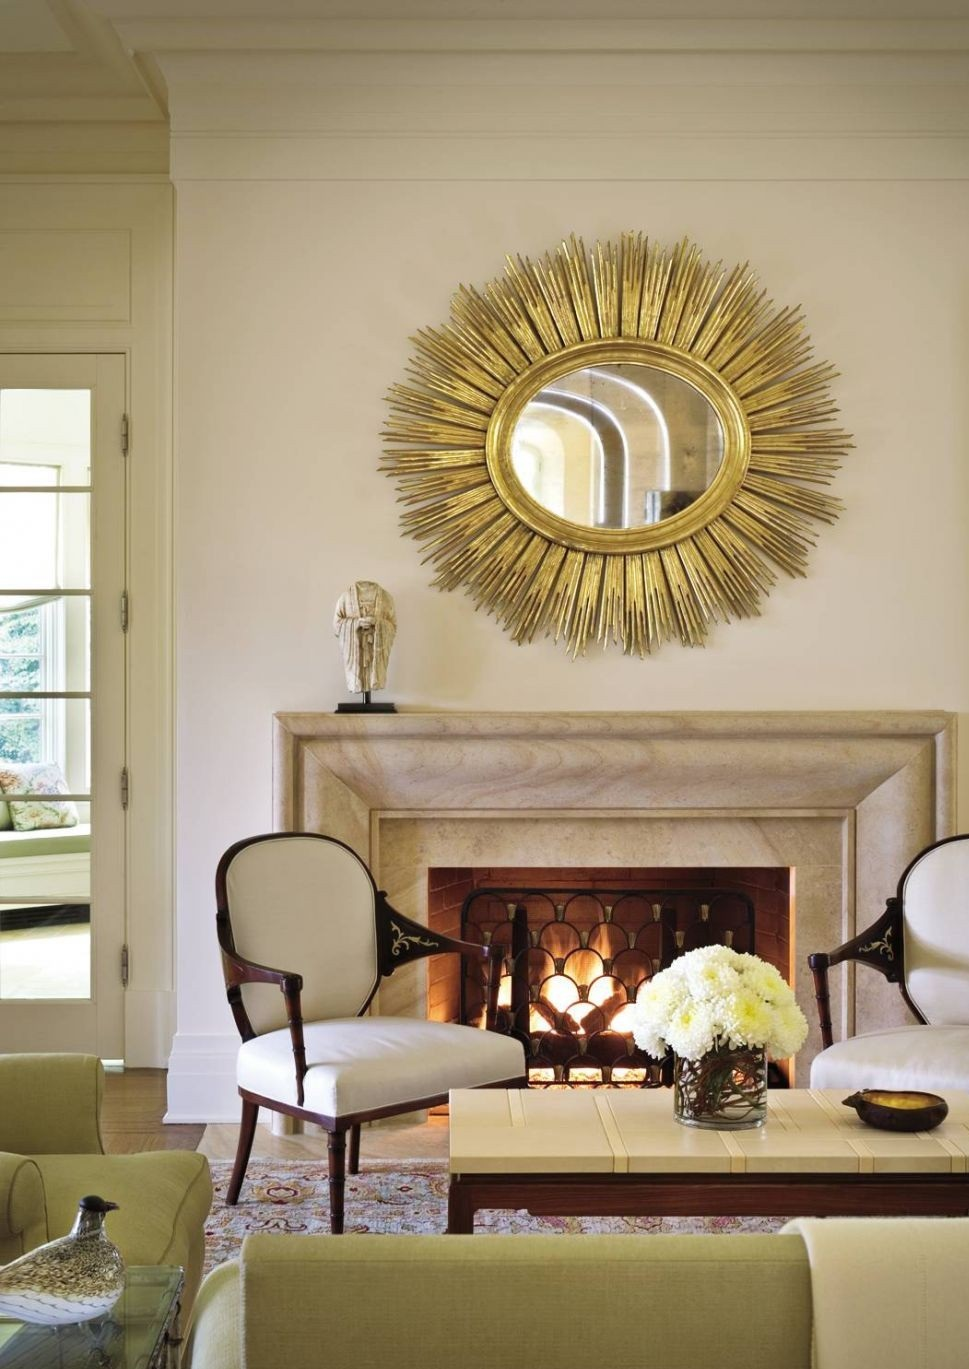 How to Decorate with Round Mirrors your Living Room_02 how to decorate with round mirrors your living room How to Decorate with Round Mirrors your Living Room ? How to Decorate with Round Mirrors your Living Room 02 1